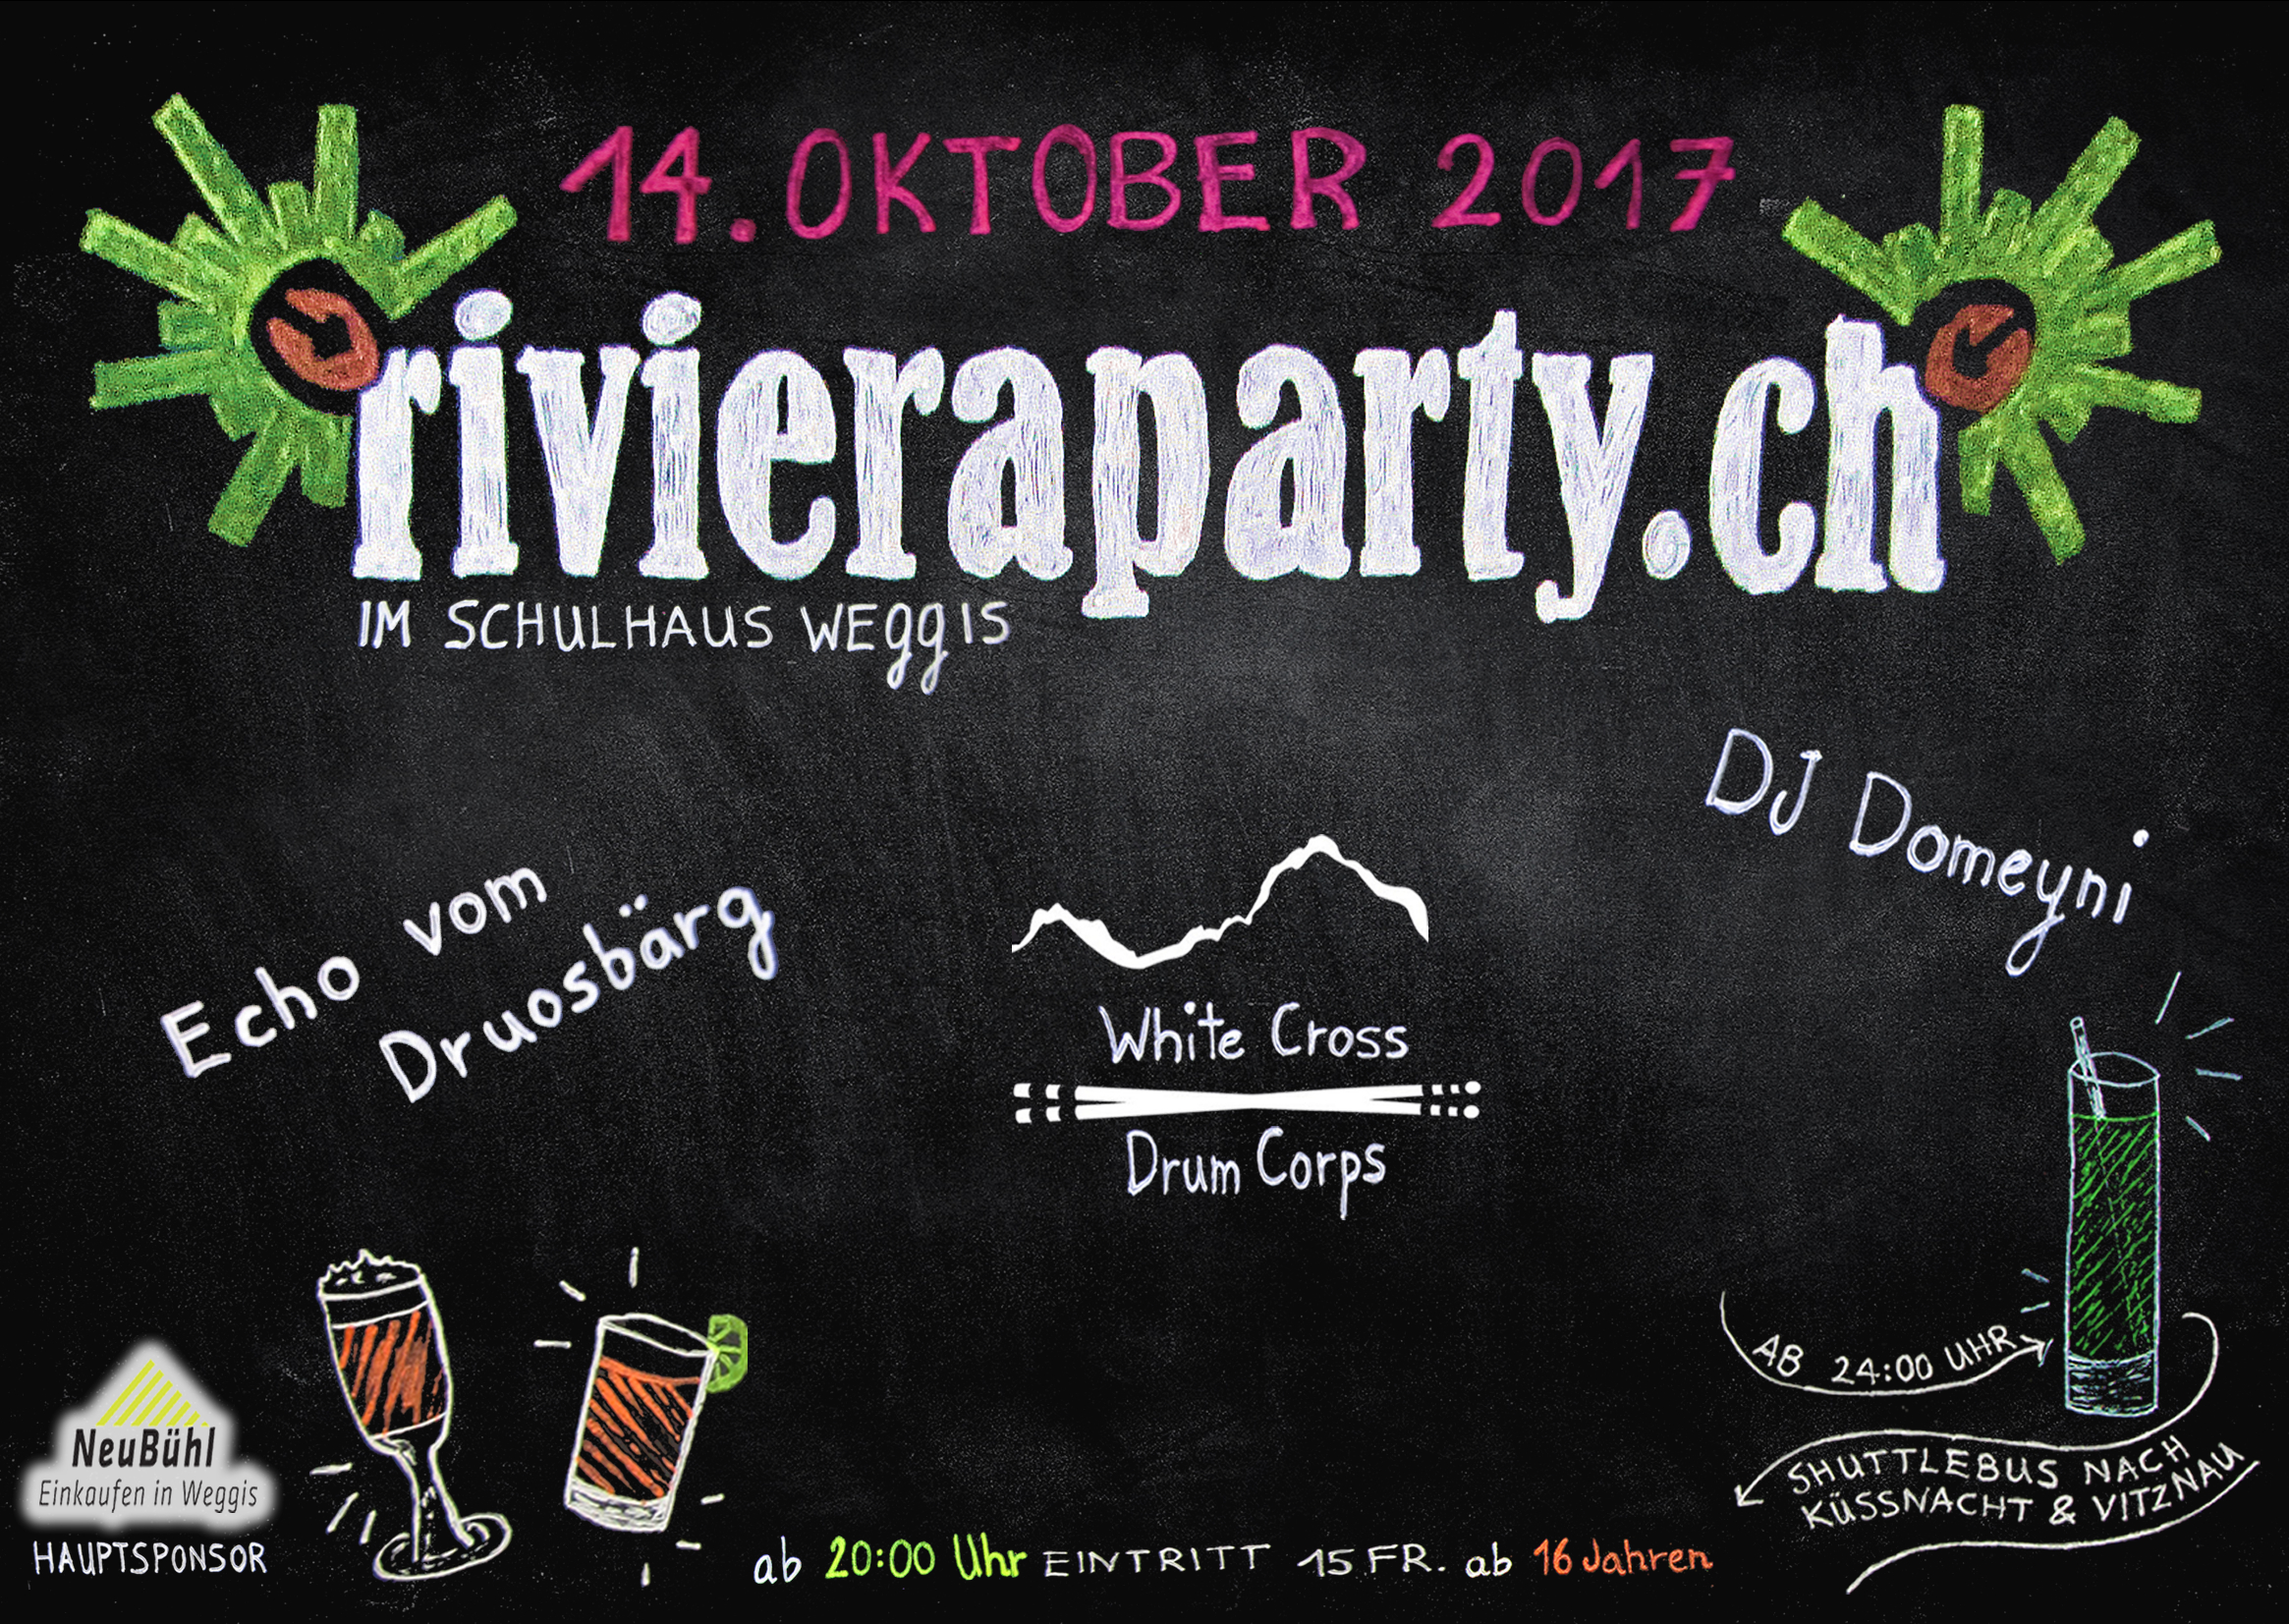 Rivieraparty